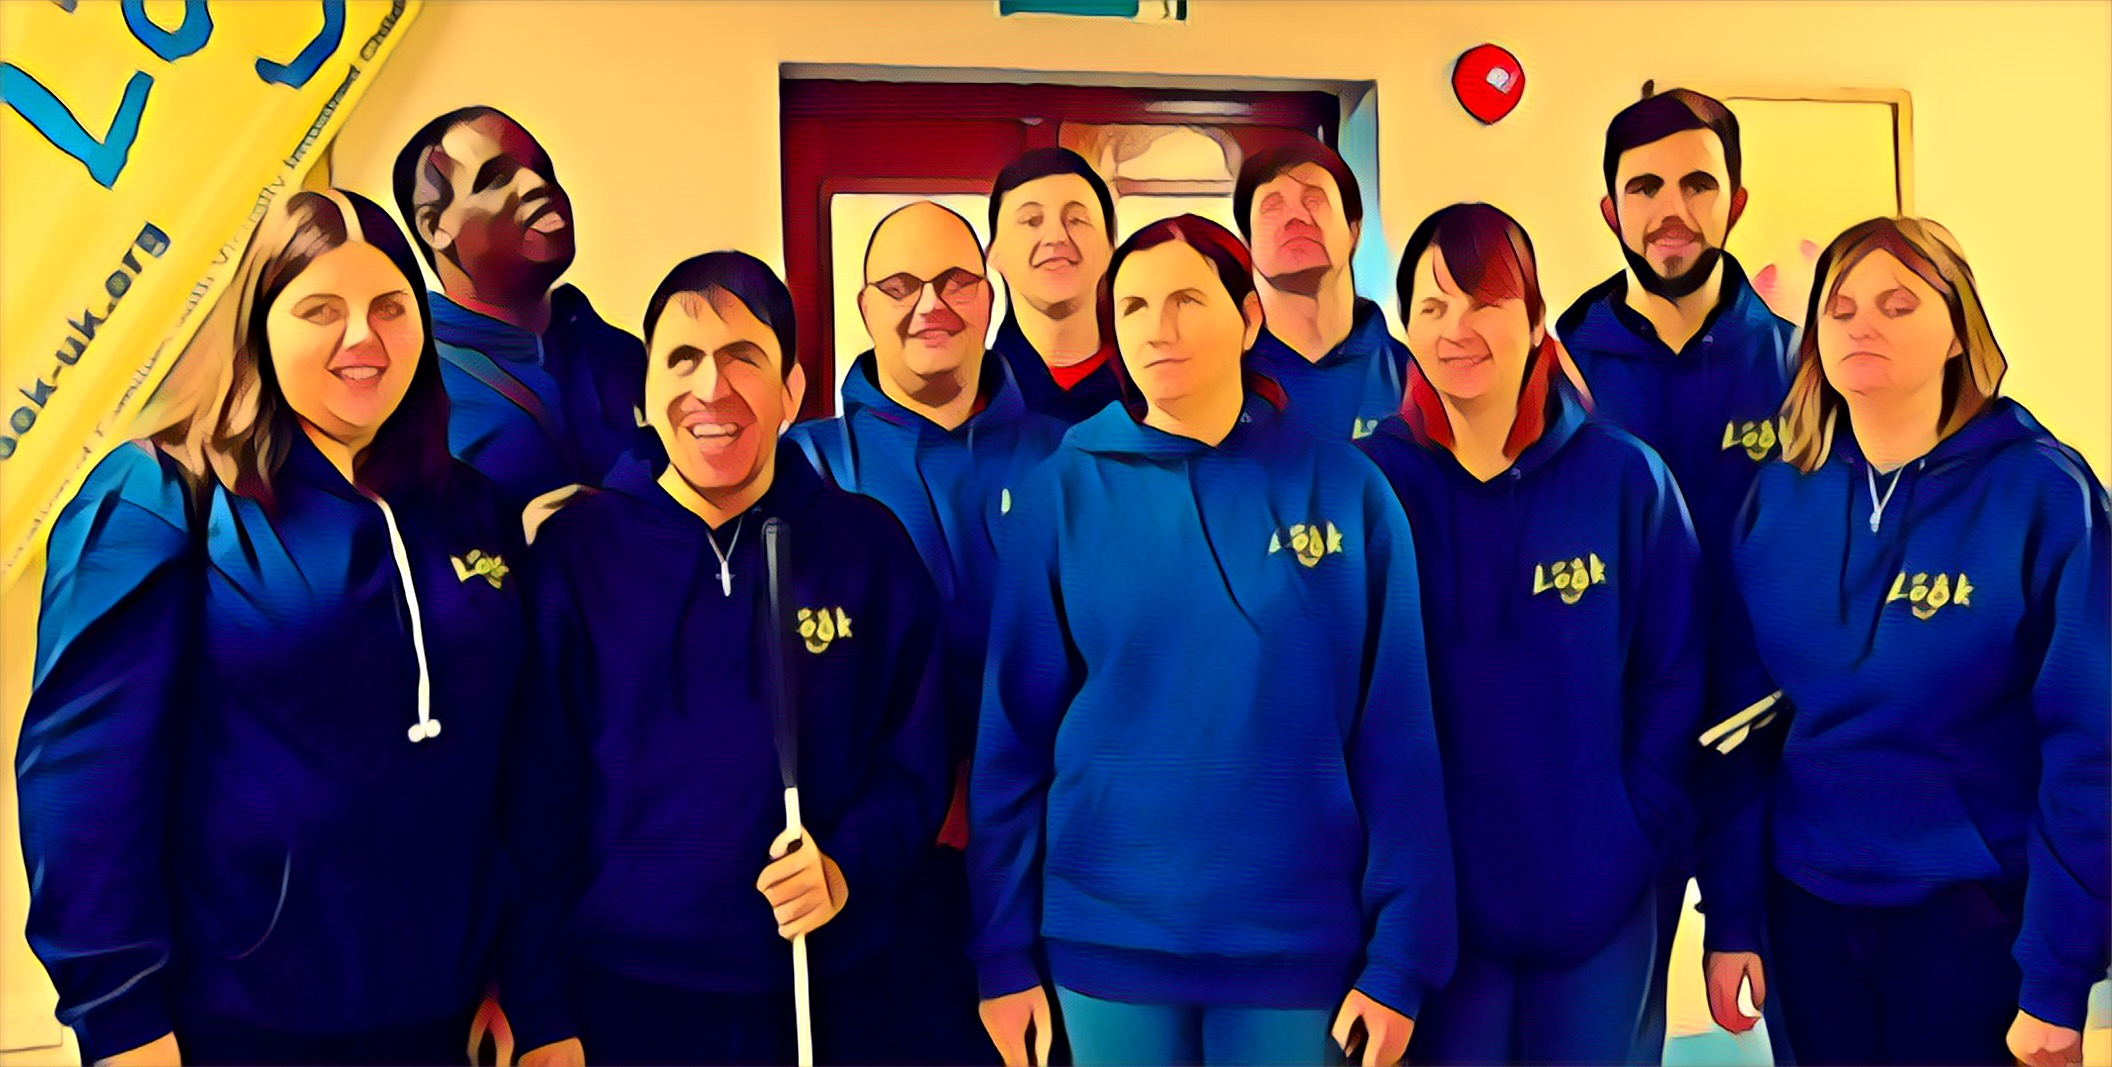 The video image shows a picture of 10 LOOK mentors. The picture, which was originally a photo, has a filter on it which makes it look like an illustration. The mentors wear blue LOOK hoodies, with the LOOK logo in yellow on the left chest. The background is yellow. White text in the lower third reads: National Braille Week: Braille in the Alphabet, a poem by Natalie.